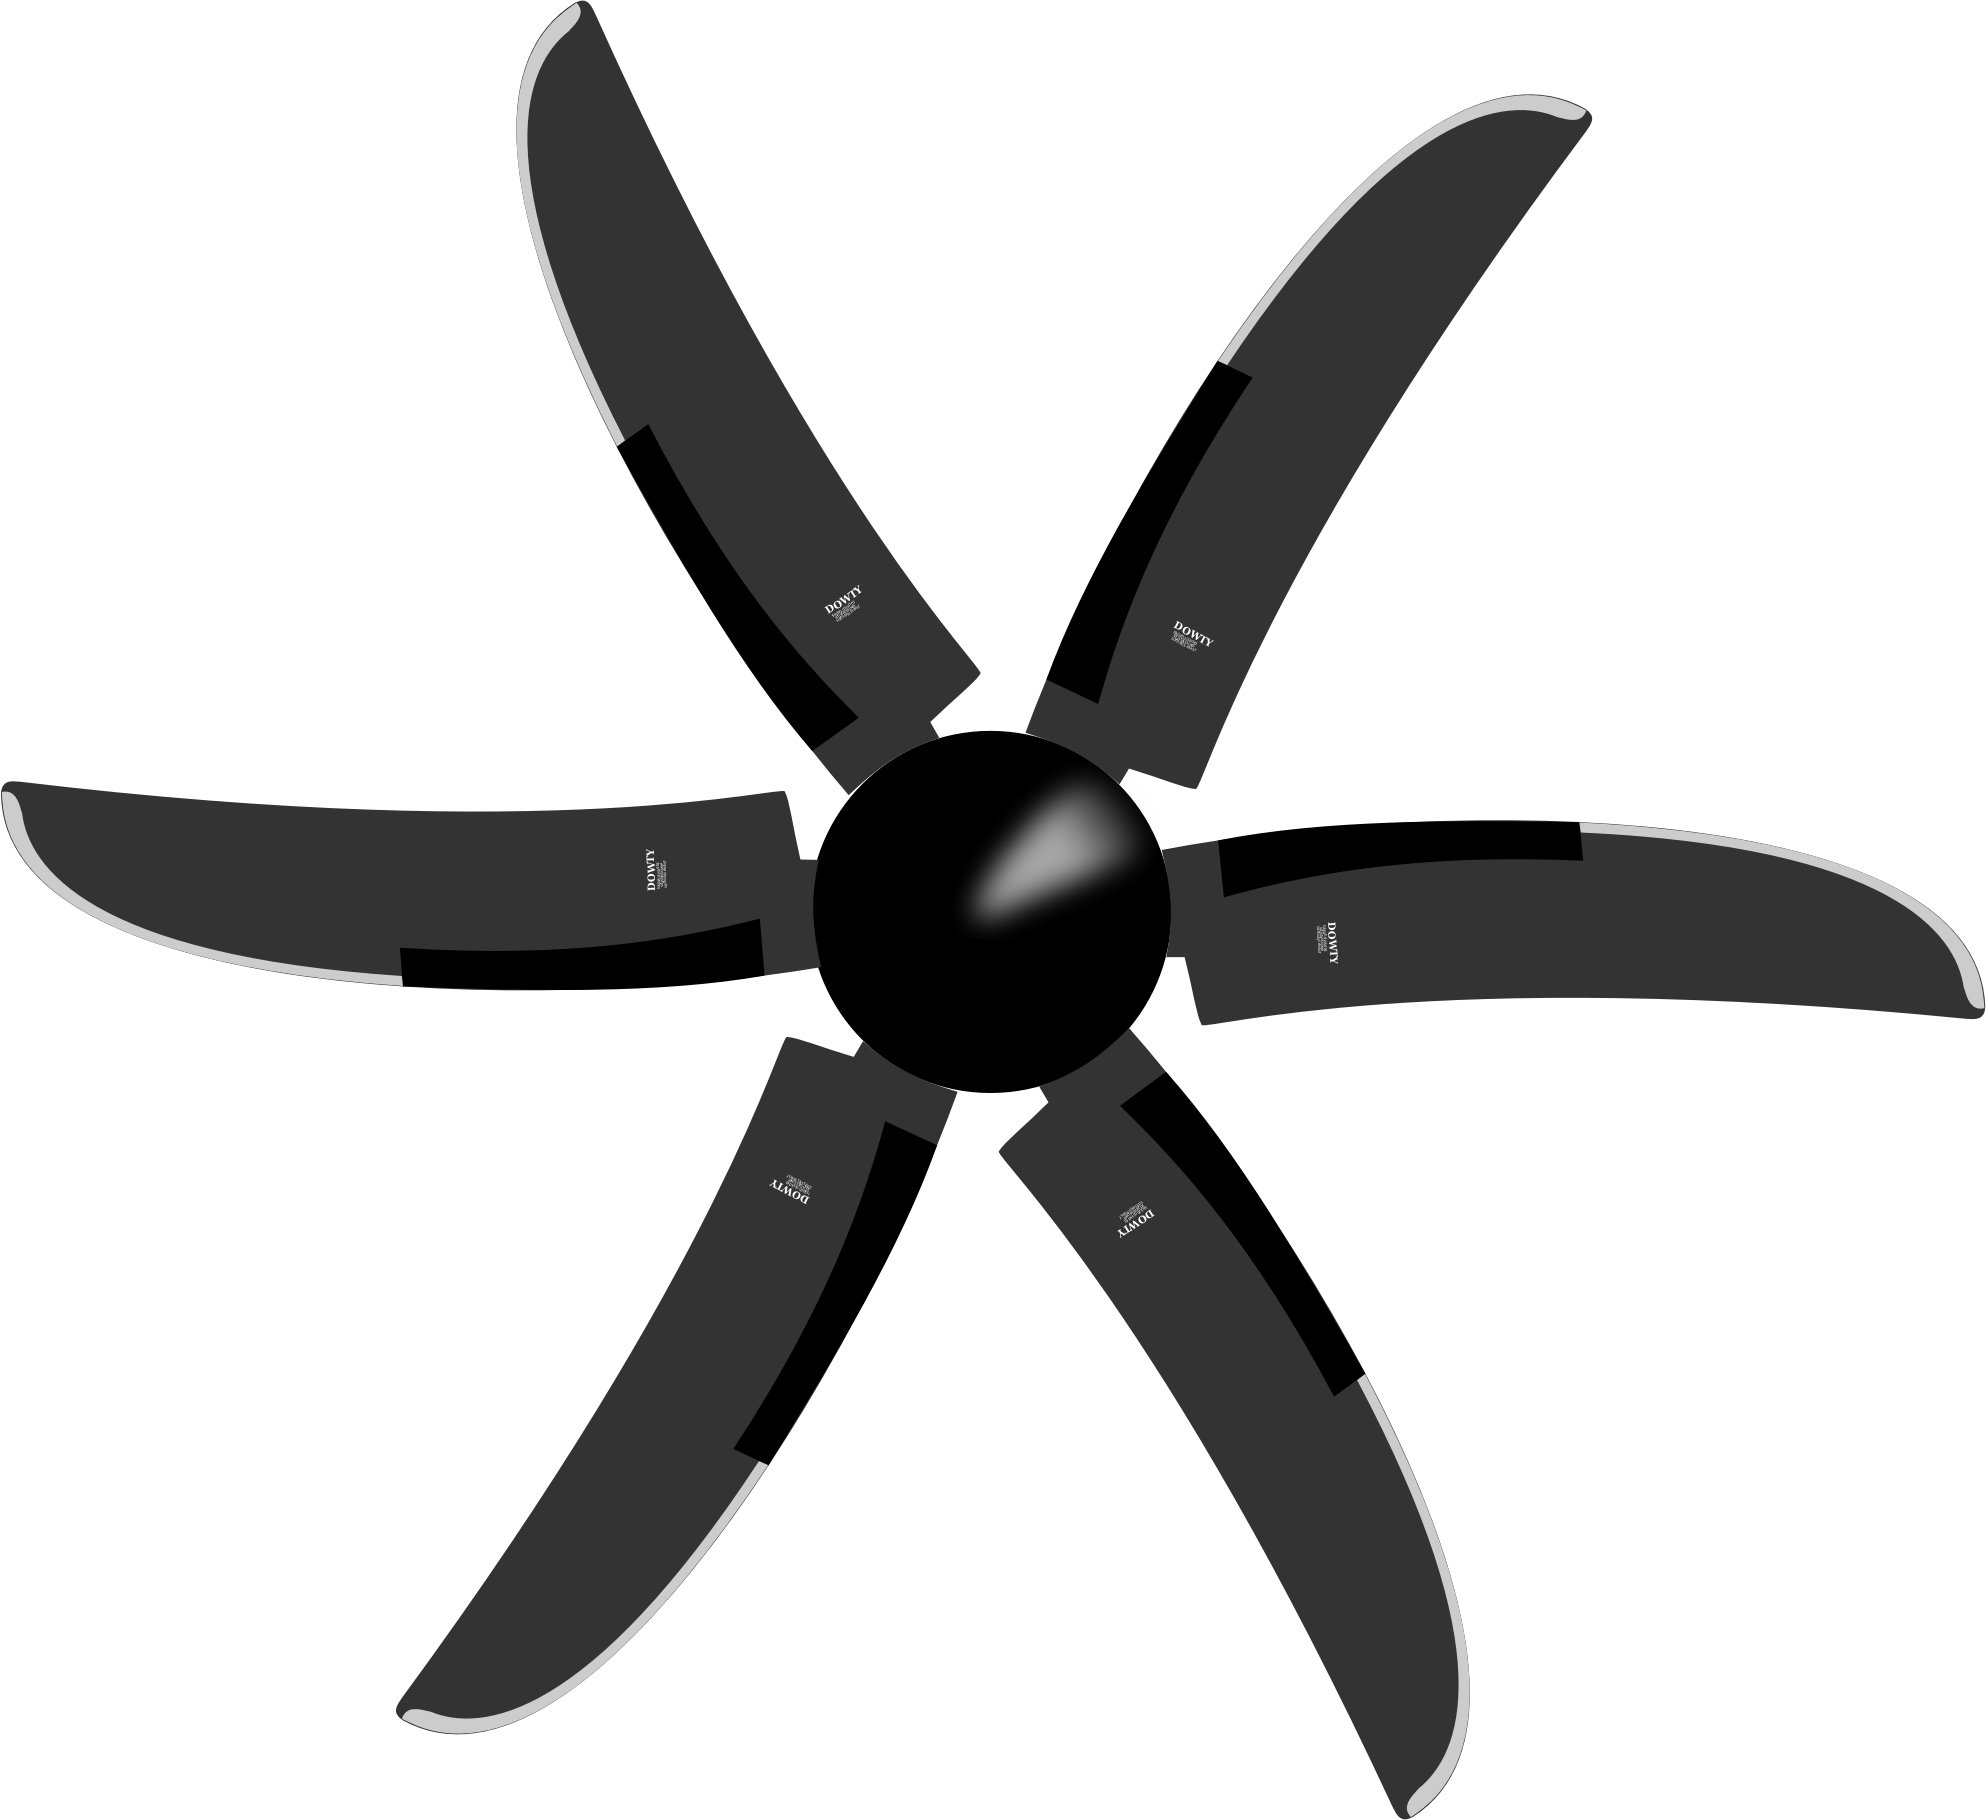 Propeller Clipart Clipground